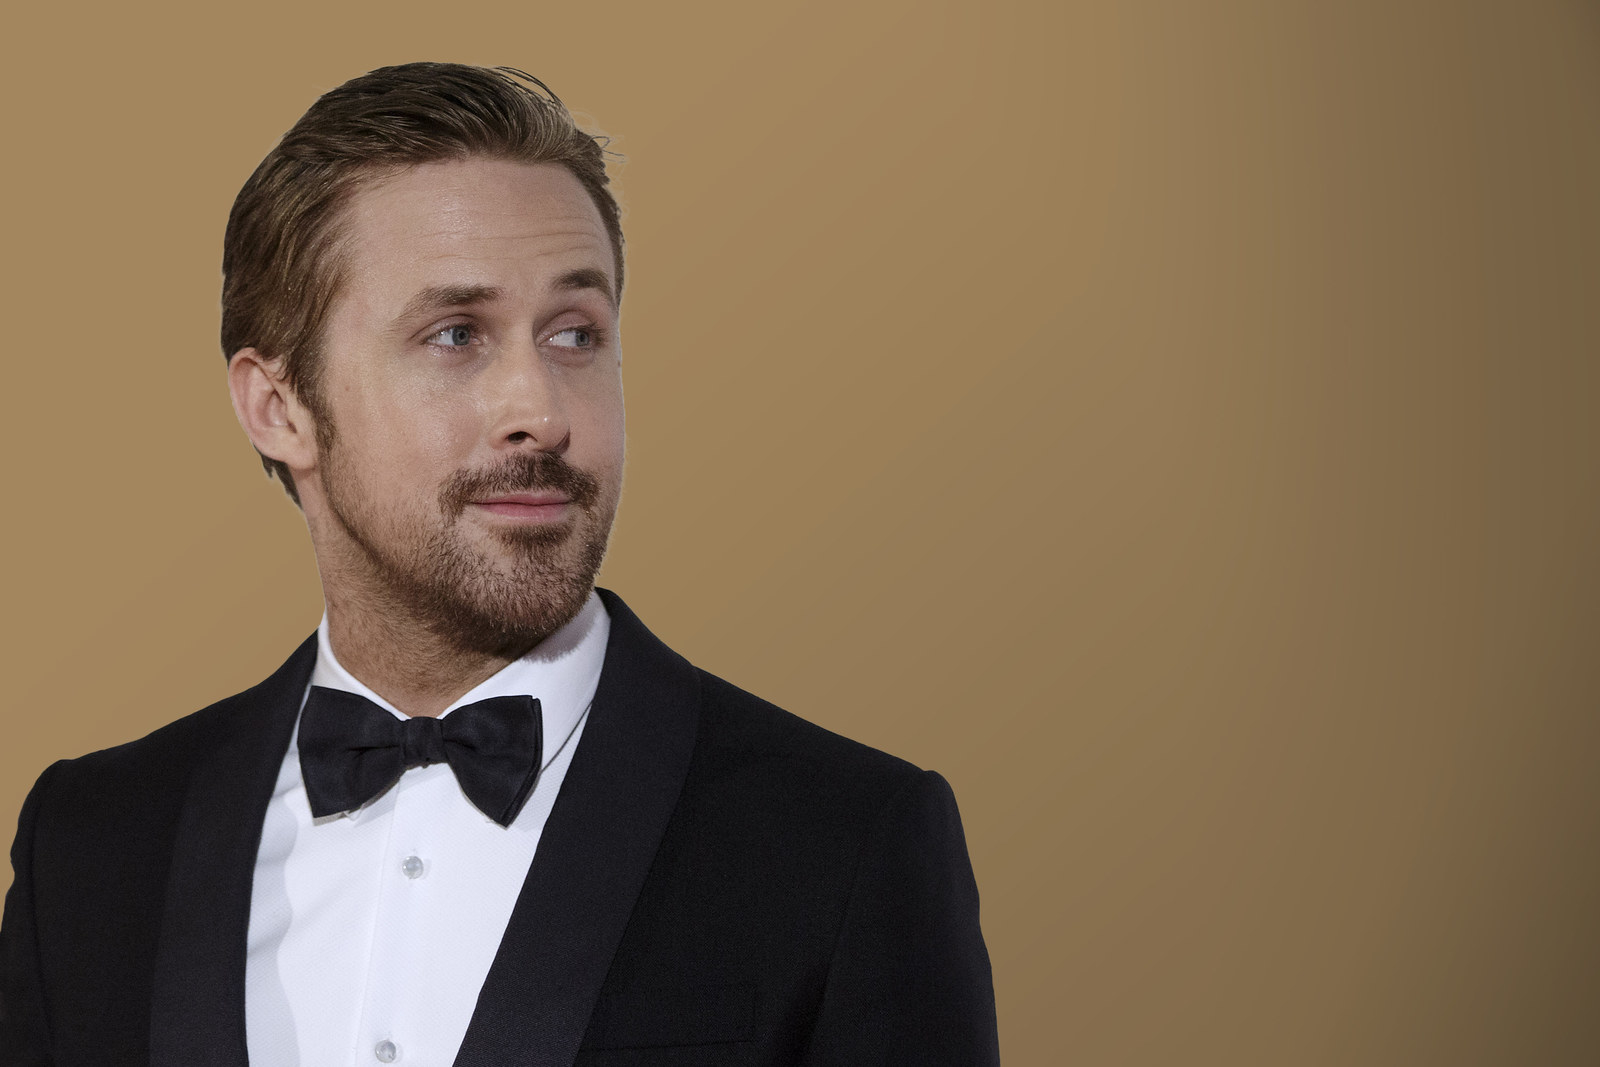 Great Job Funny Meme Ryan Gosling : Search results for ryan gosling ecards from free and funny cards